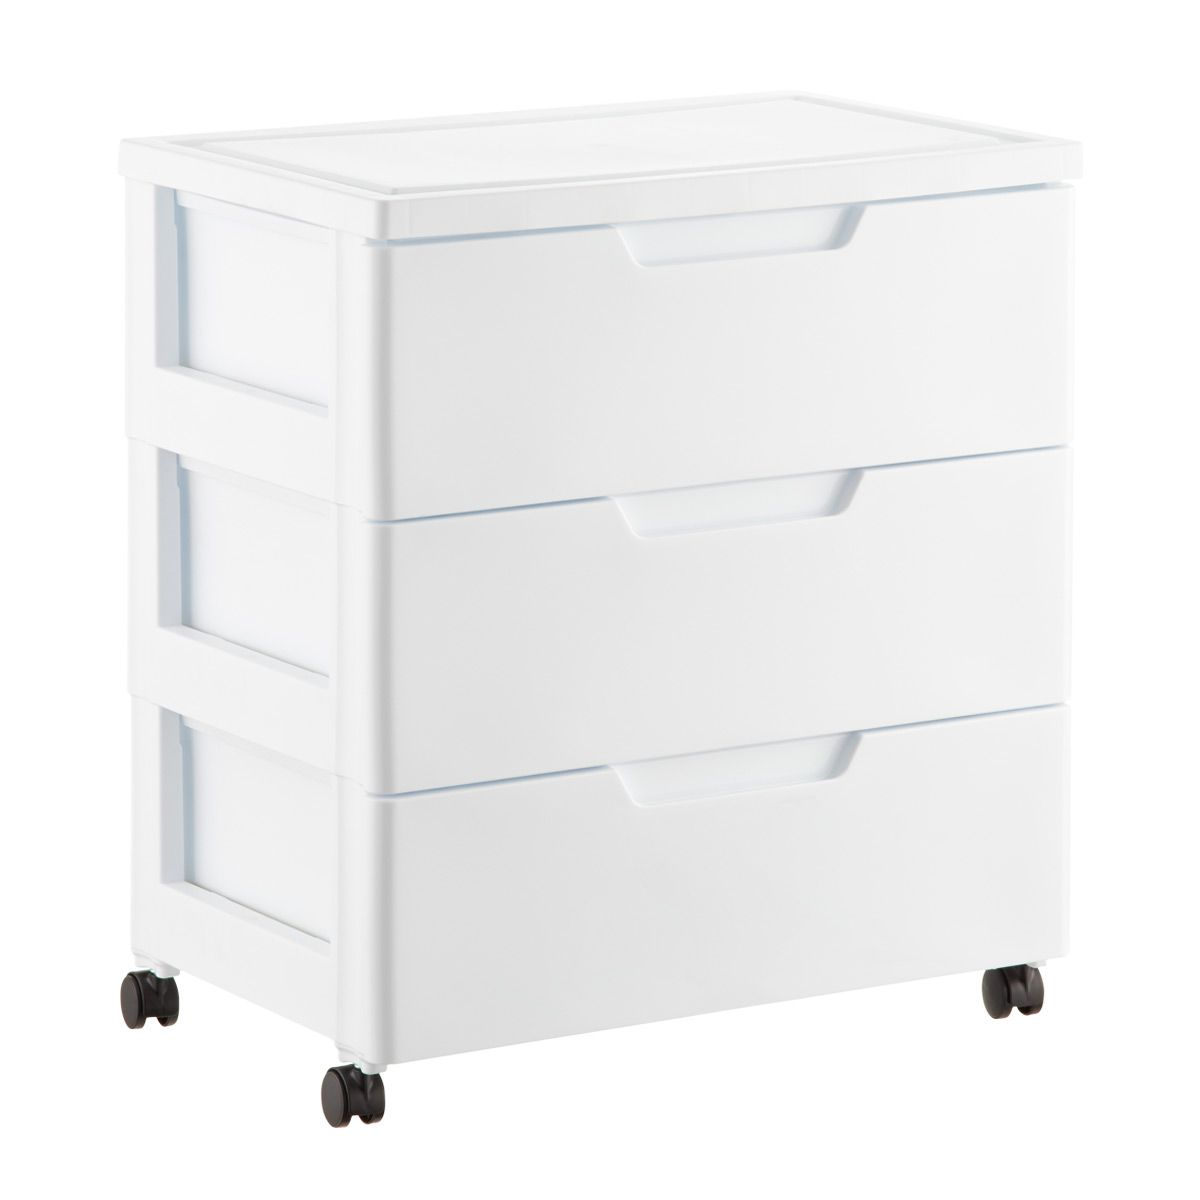 Plastic Storage Drawers Storage Made Easier Convenient Than Before Plastic Storage Drawers Three Drawer Dresser Plastic Drawers